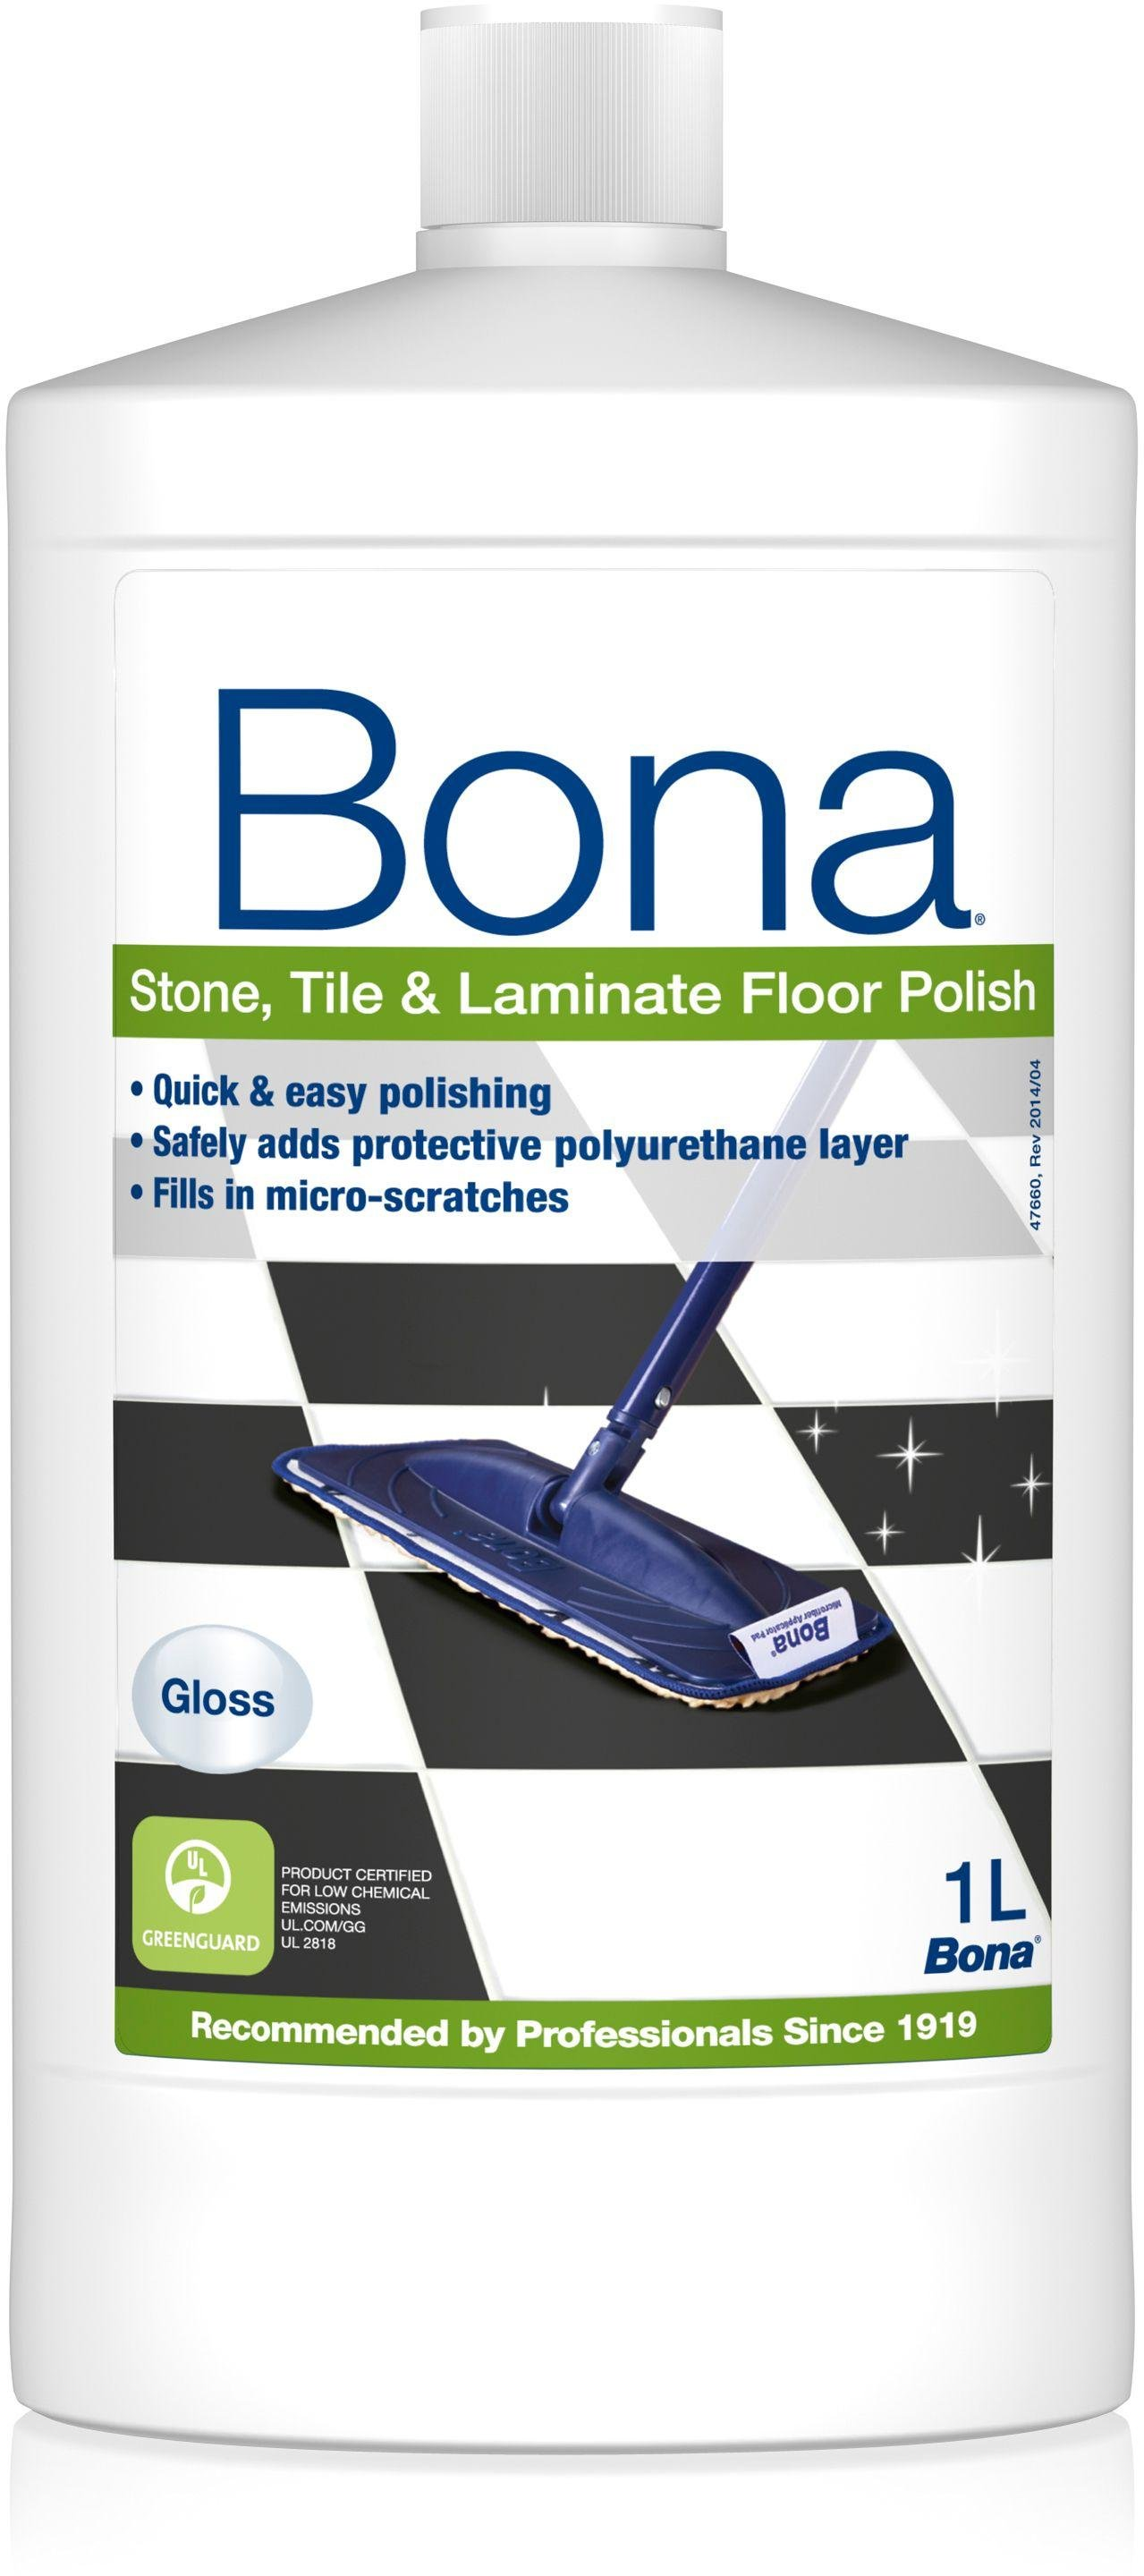 Image of Bona 1L Stone, Tile and Laminate Floor Polish Gloss